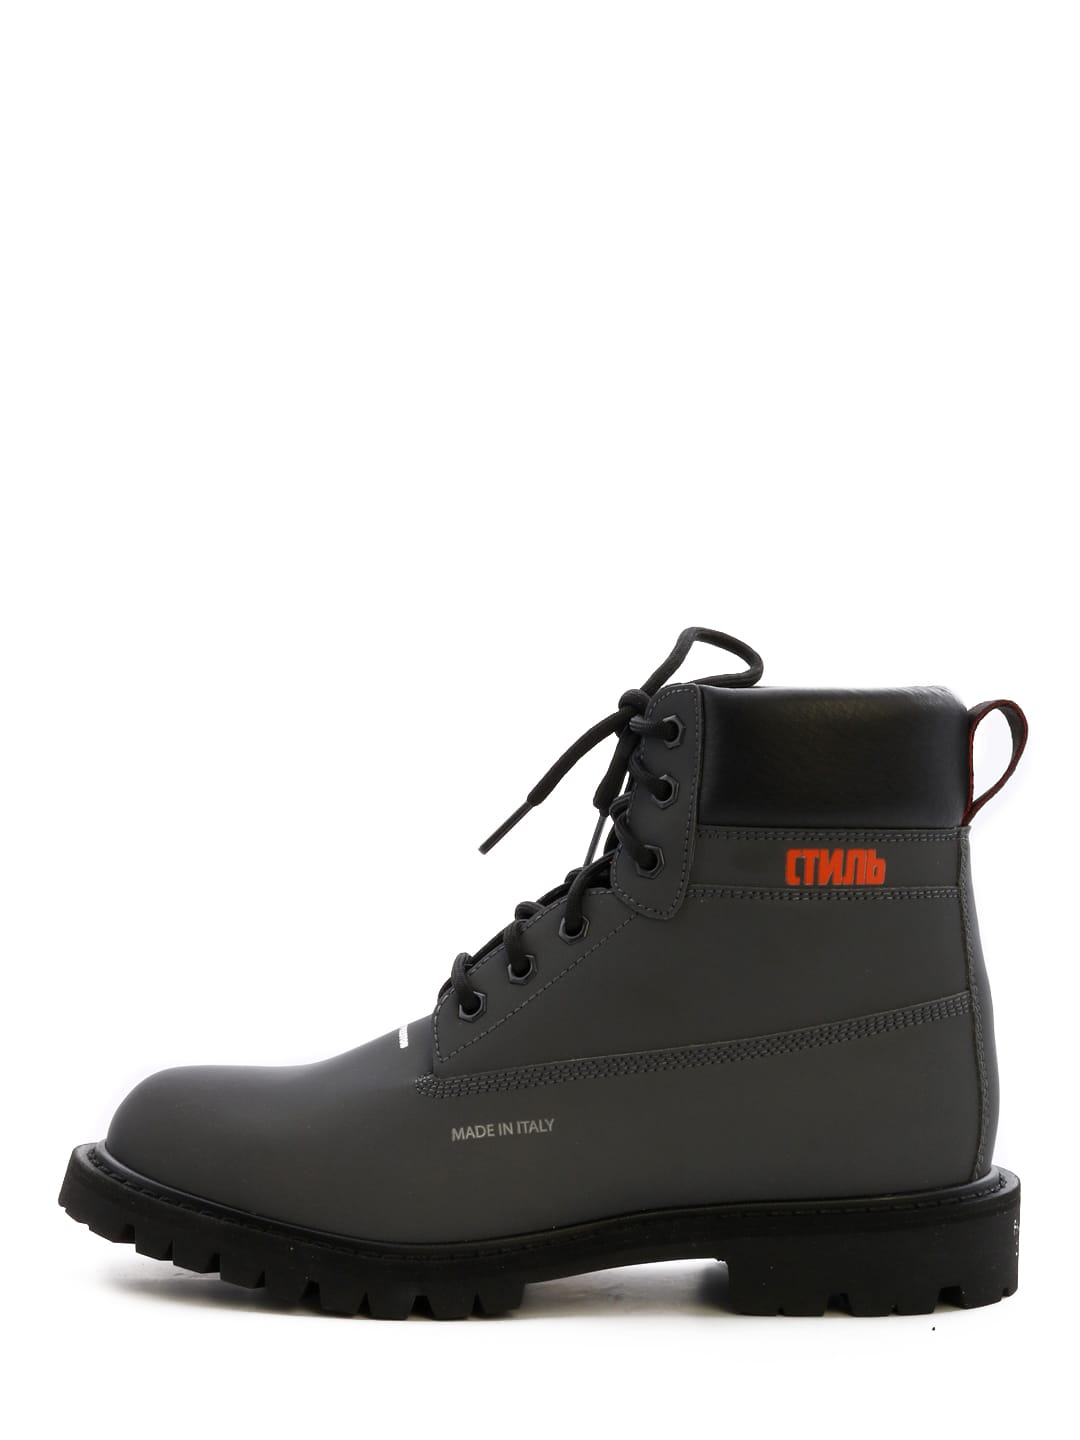 HERON PRESTON Worker Boots